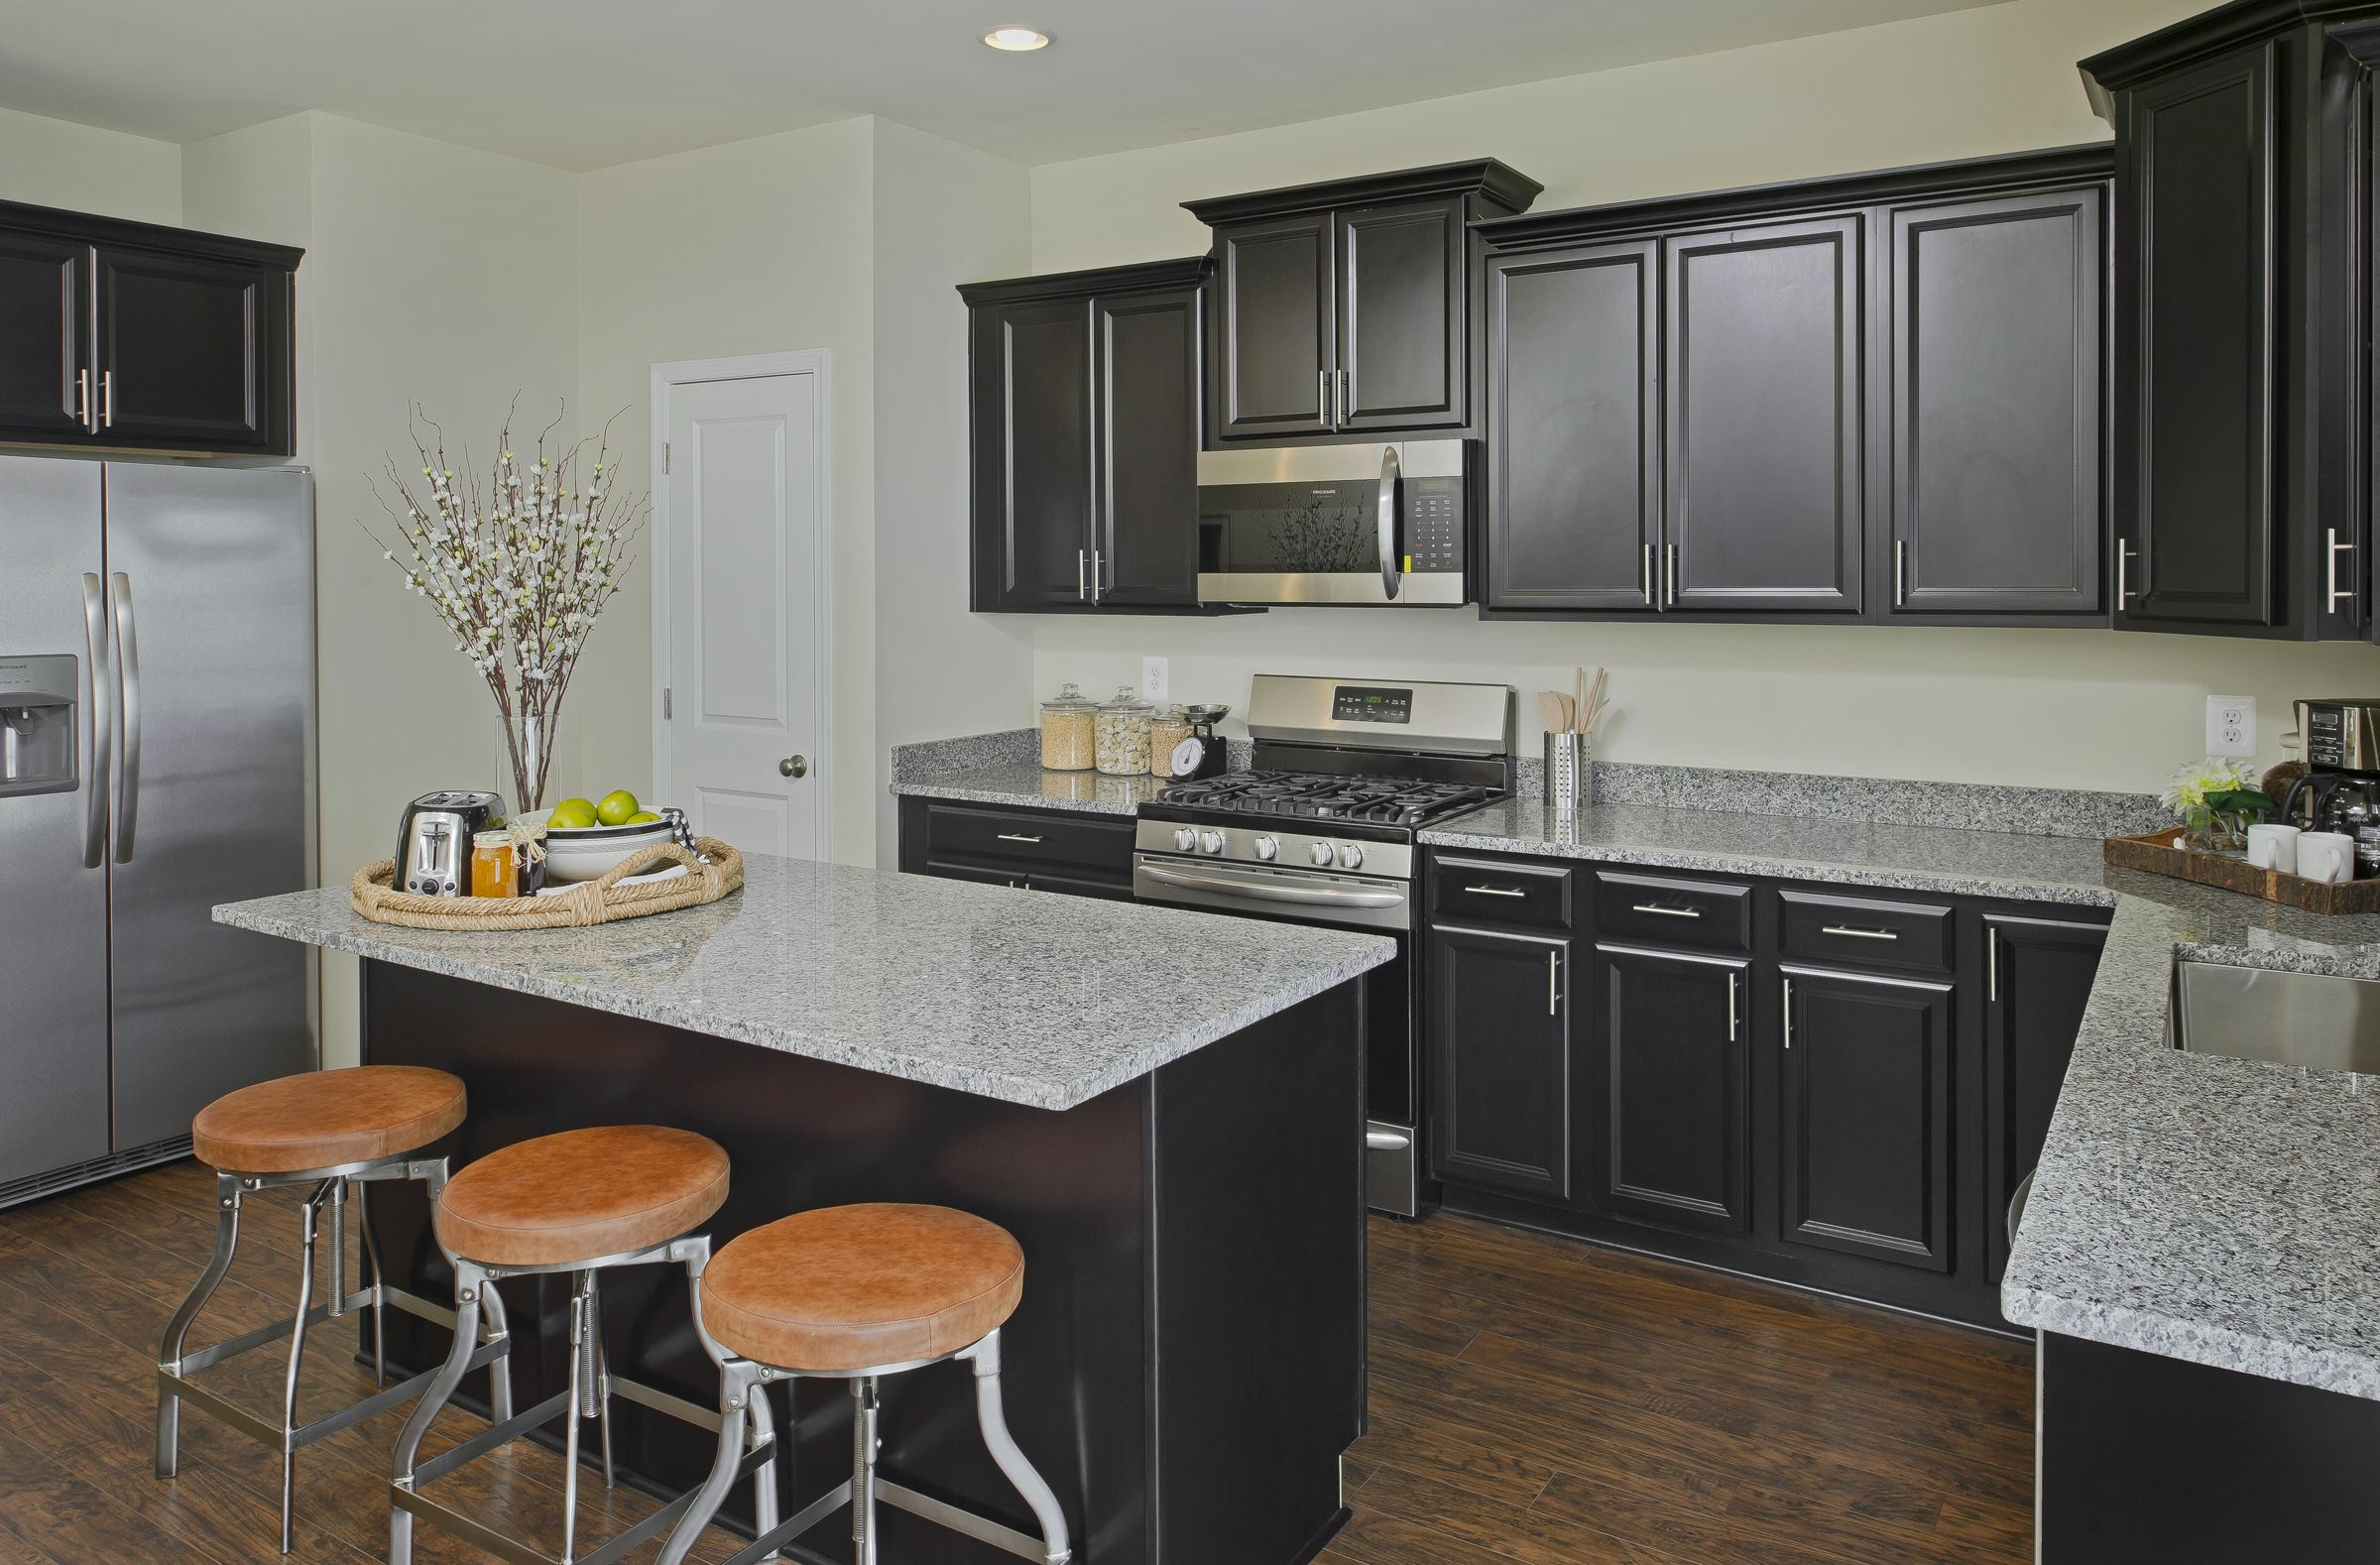 Kitchen in the Baylor at Creekstone Village by Lennar